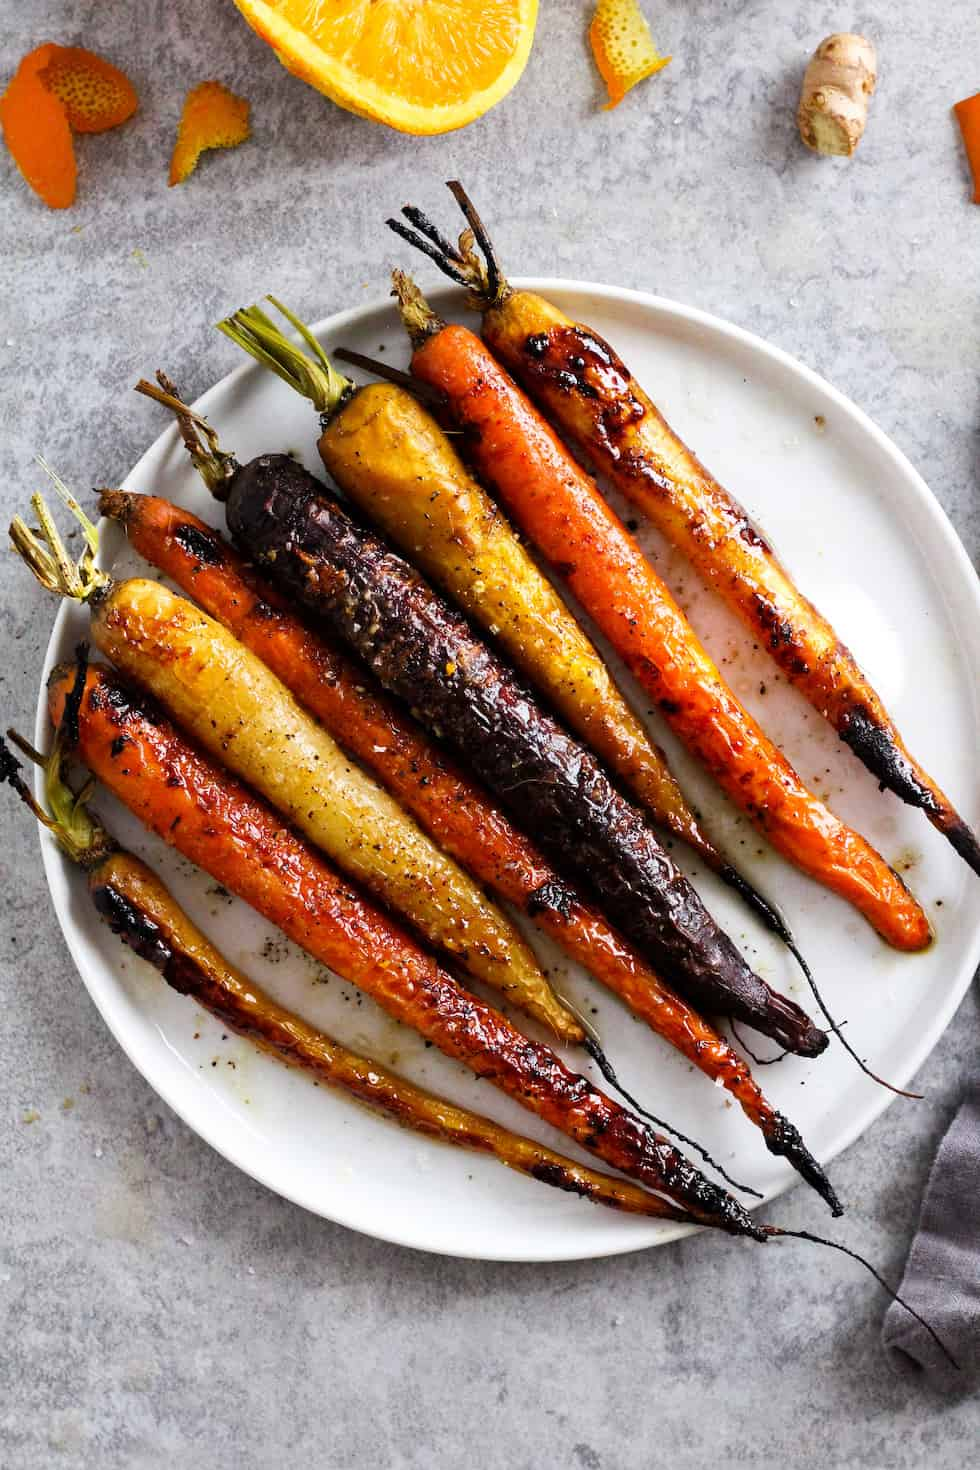 Roasted rainbow carrots on white plate with orange and ginger around the edges.